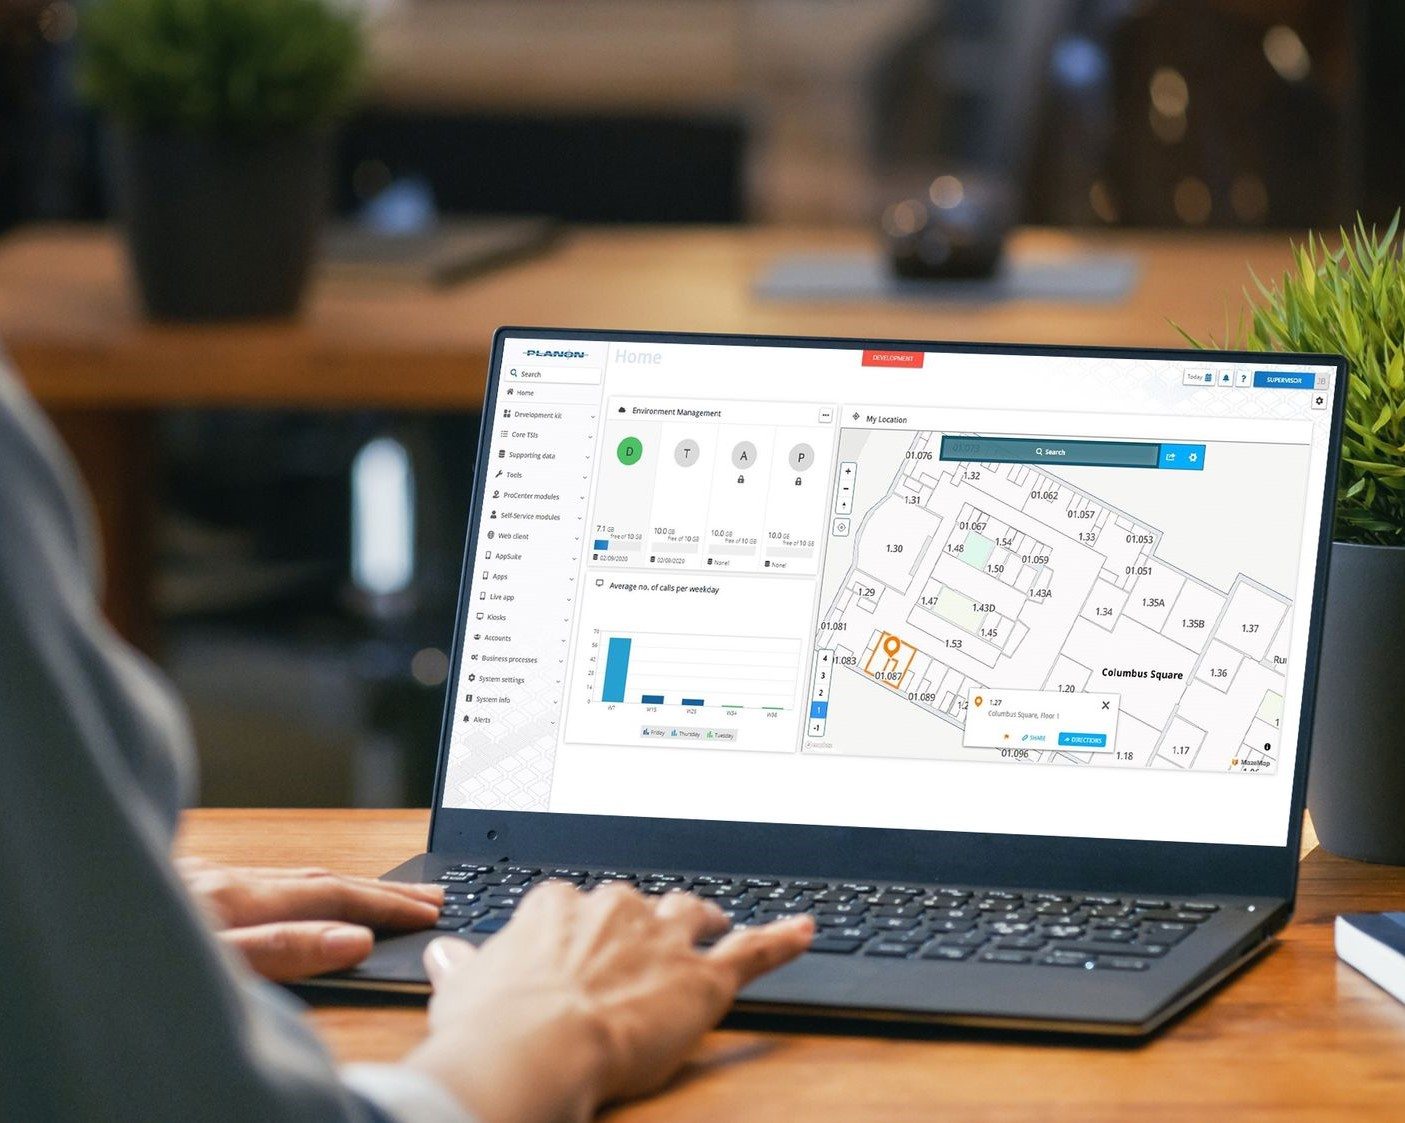 Planon and MazeMap are partnering to integrate Planon's software for real estate, space, and asset management and MazeMap's digital wayfinding solutions.